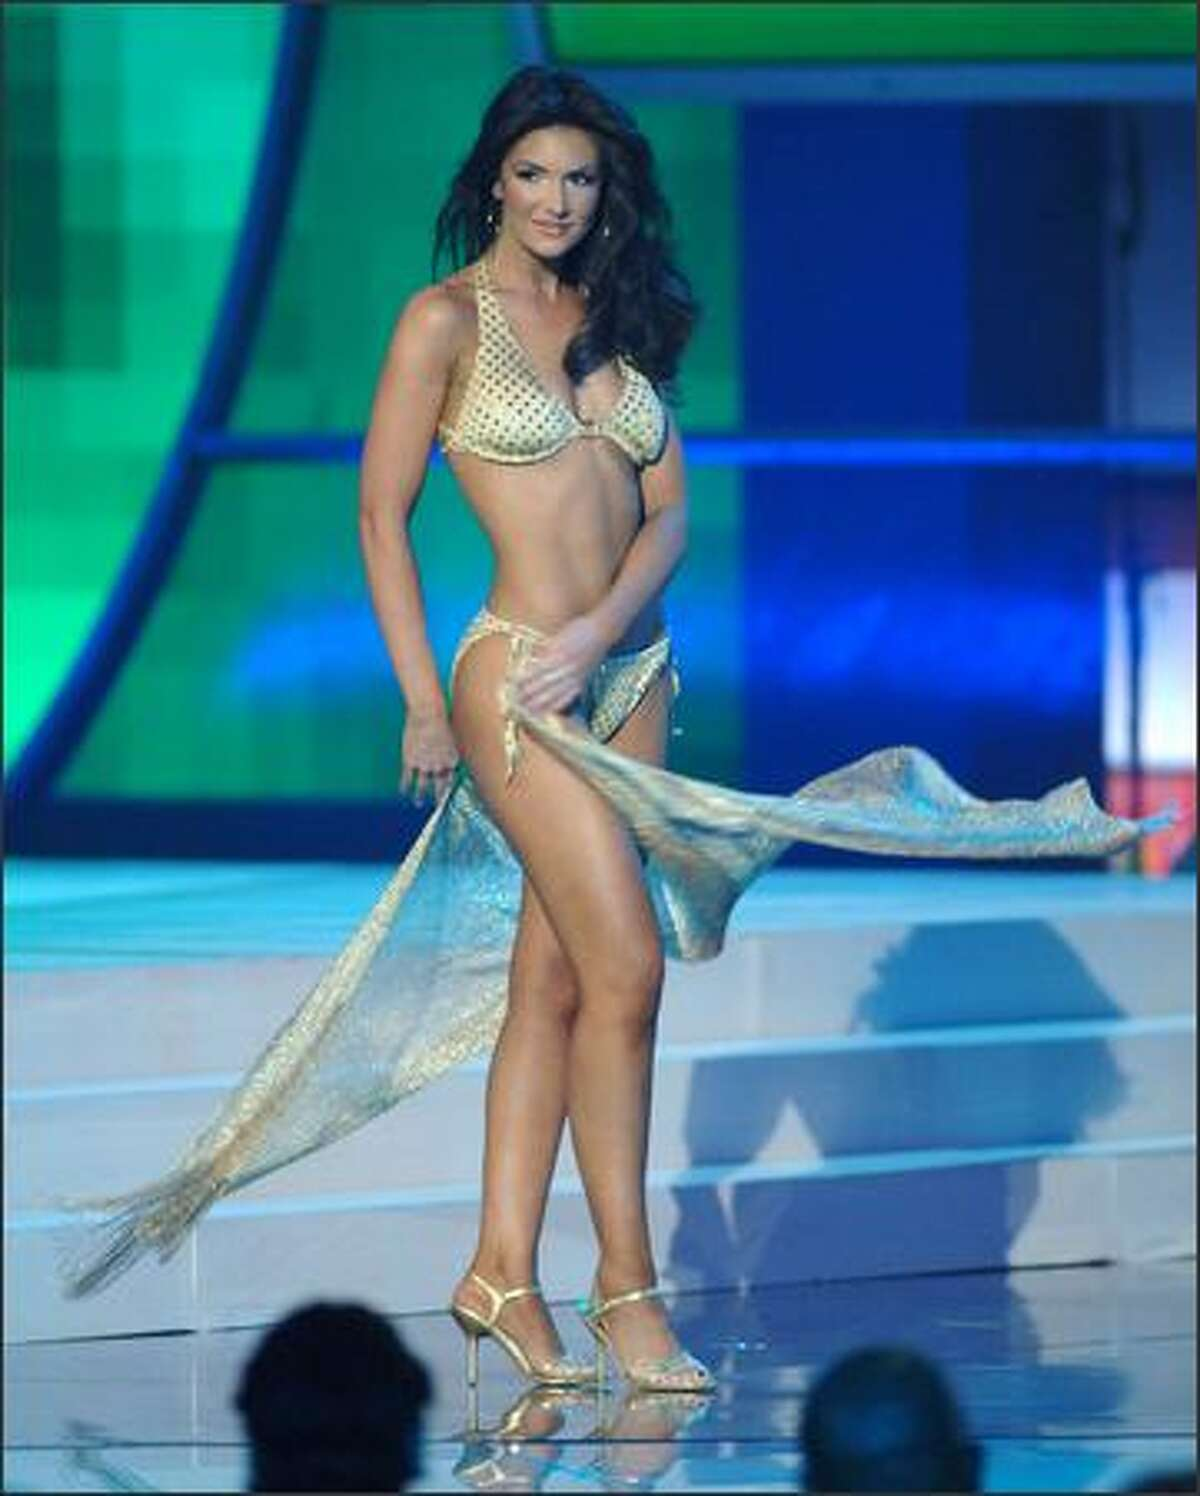 Wearing a swimsuit from BSC Swimwear Thailand and Steve Madden shoes, Lauren Lanning, Miss Texas USA 2006, participates in the swimsuit portion of the Miss USA competition at the 1st Mariner Arena in Baltimore.